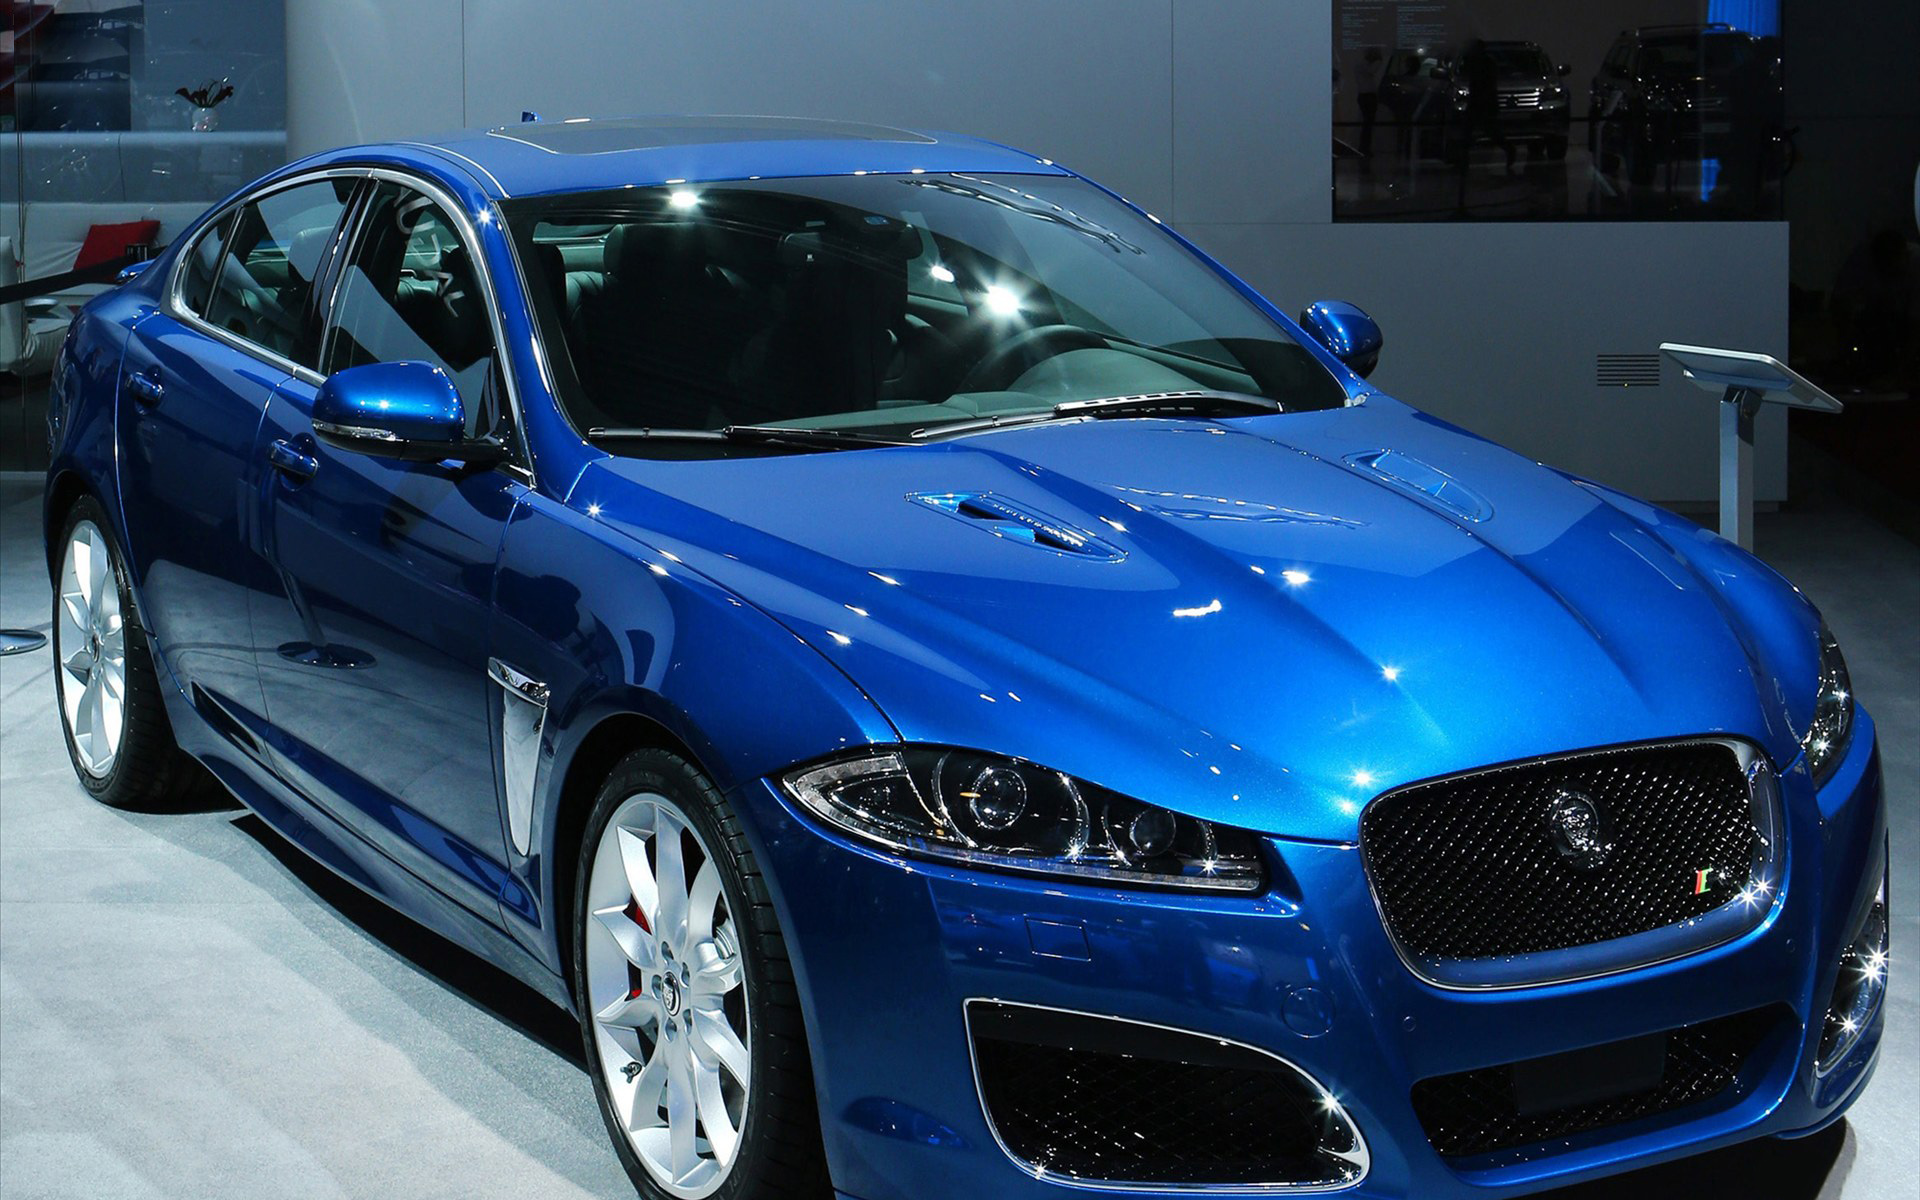 Jaguar Xfr Car Hd Wallpaper My Site